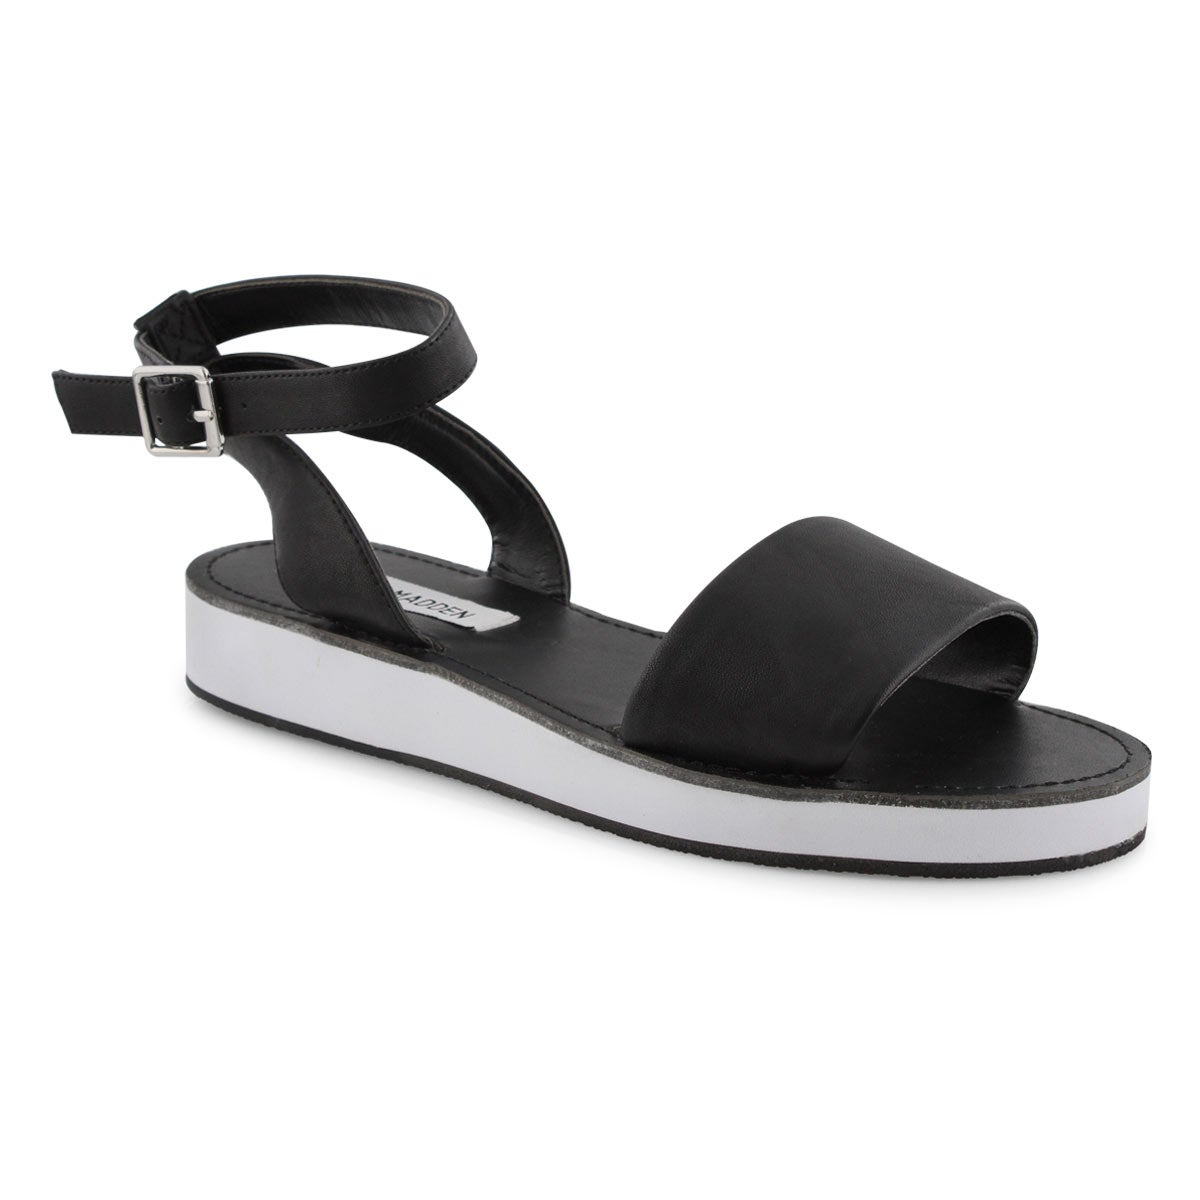 Women's FELICIA black casual sandals